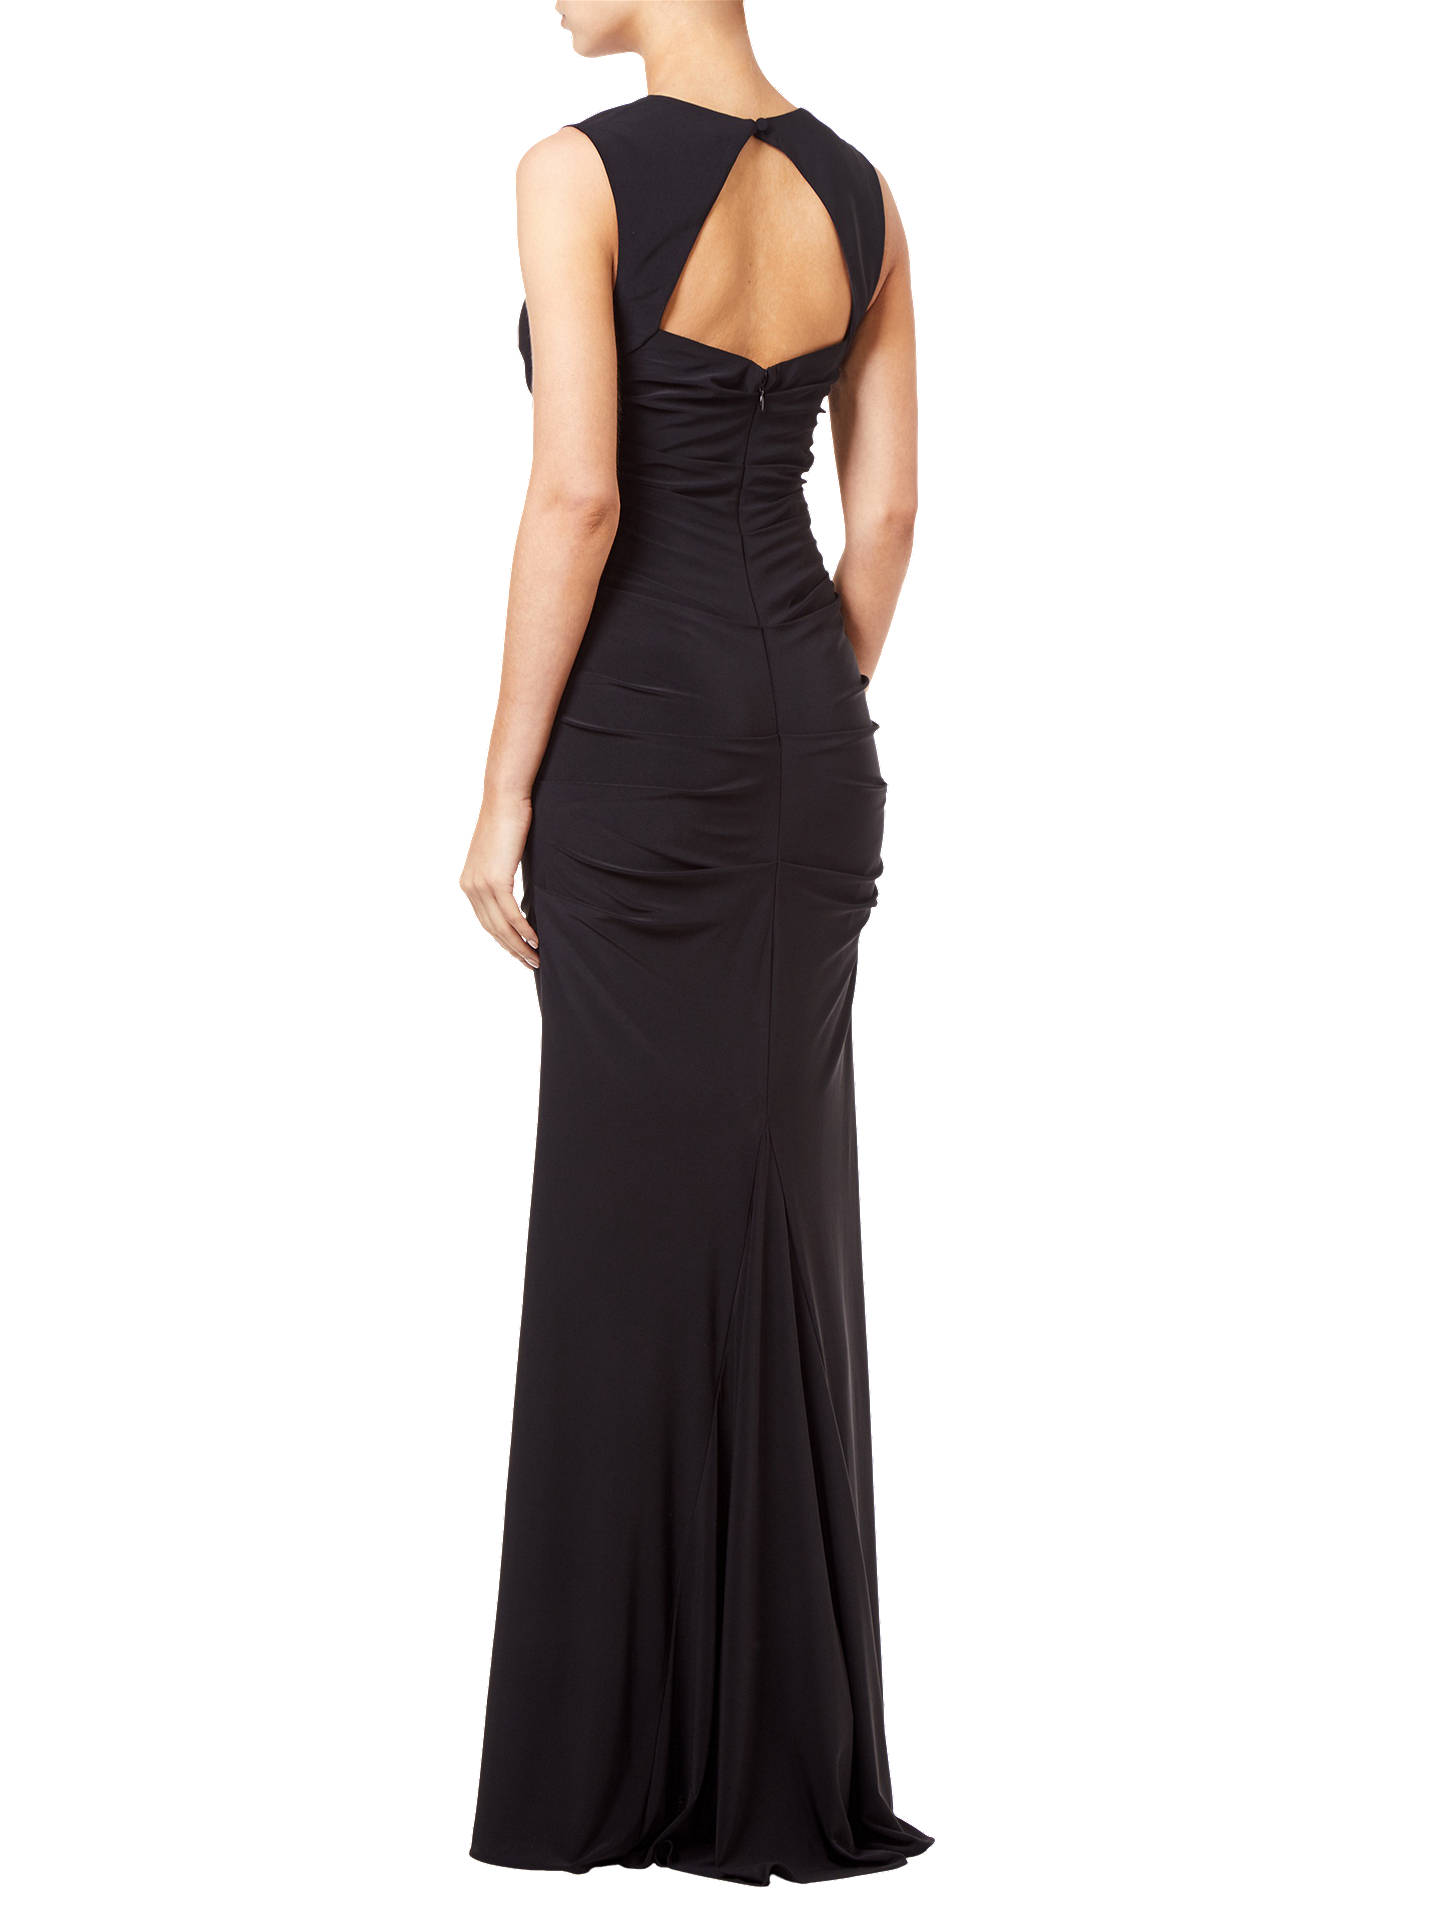 BuyAdrianna Papell Sleeveless Jersey Gown, Black, 6 Online at johnlewis.com